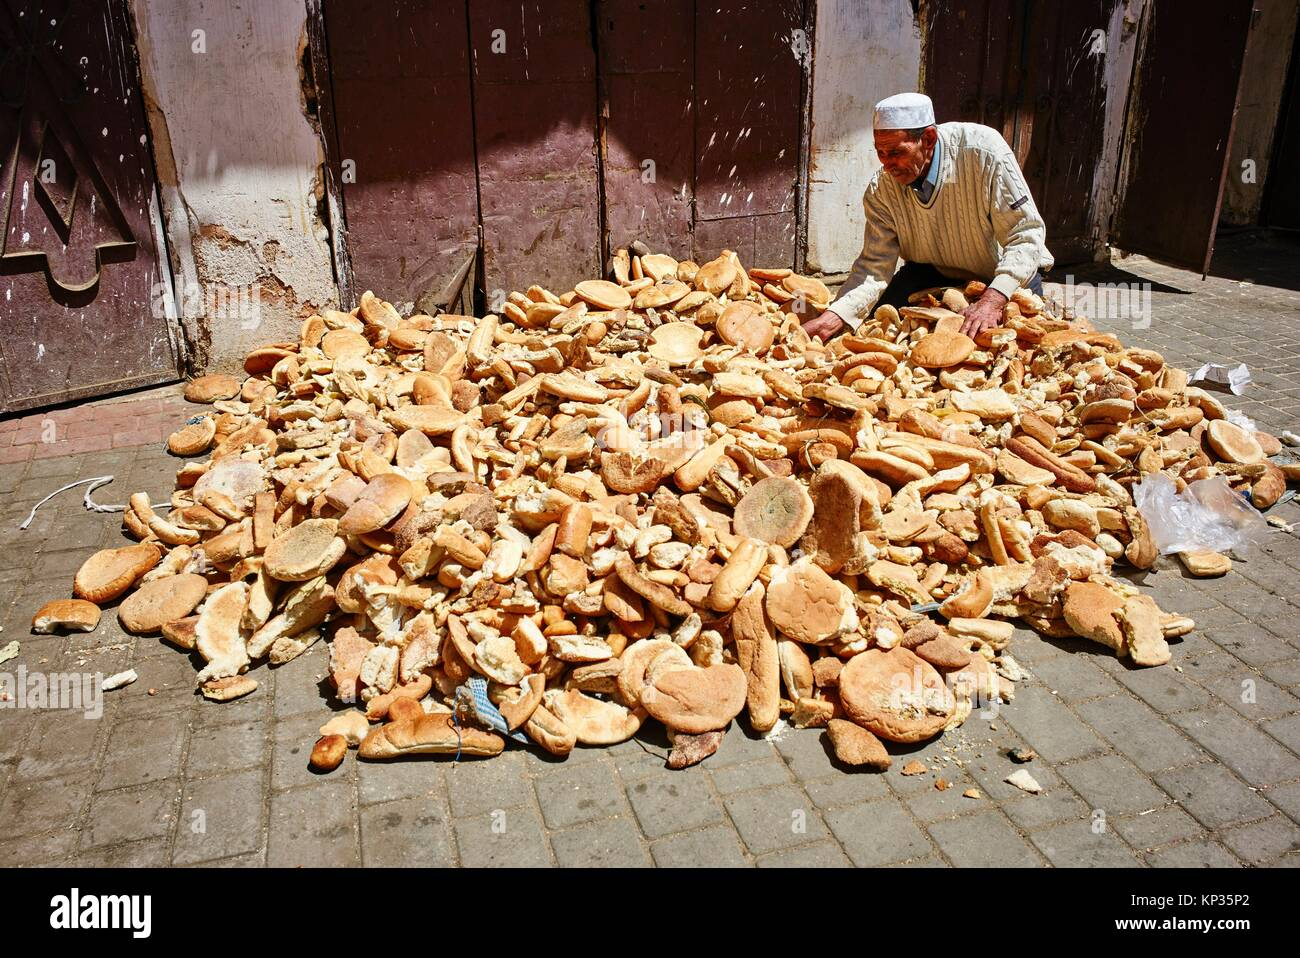 Gathering stale bread at the street market in Meknes, Morocco - Stock Image